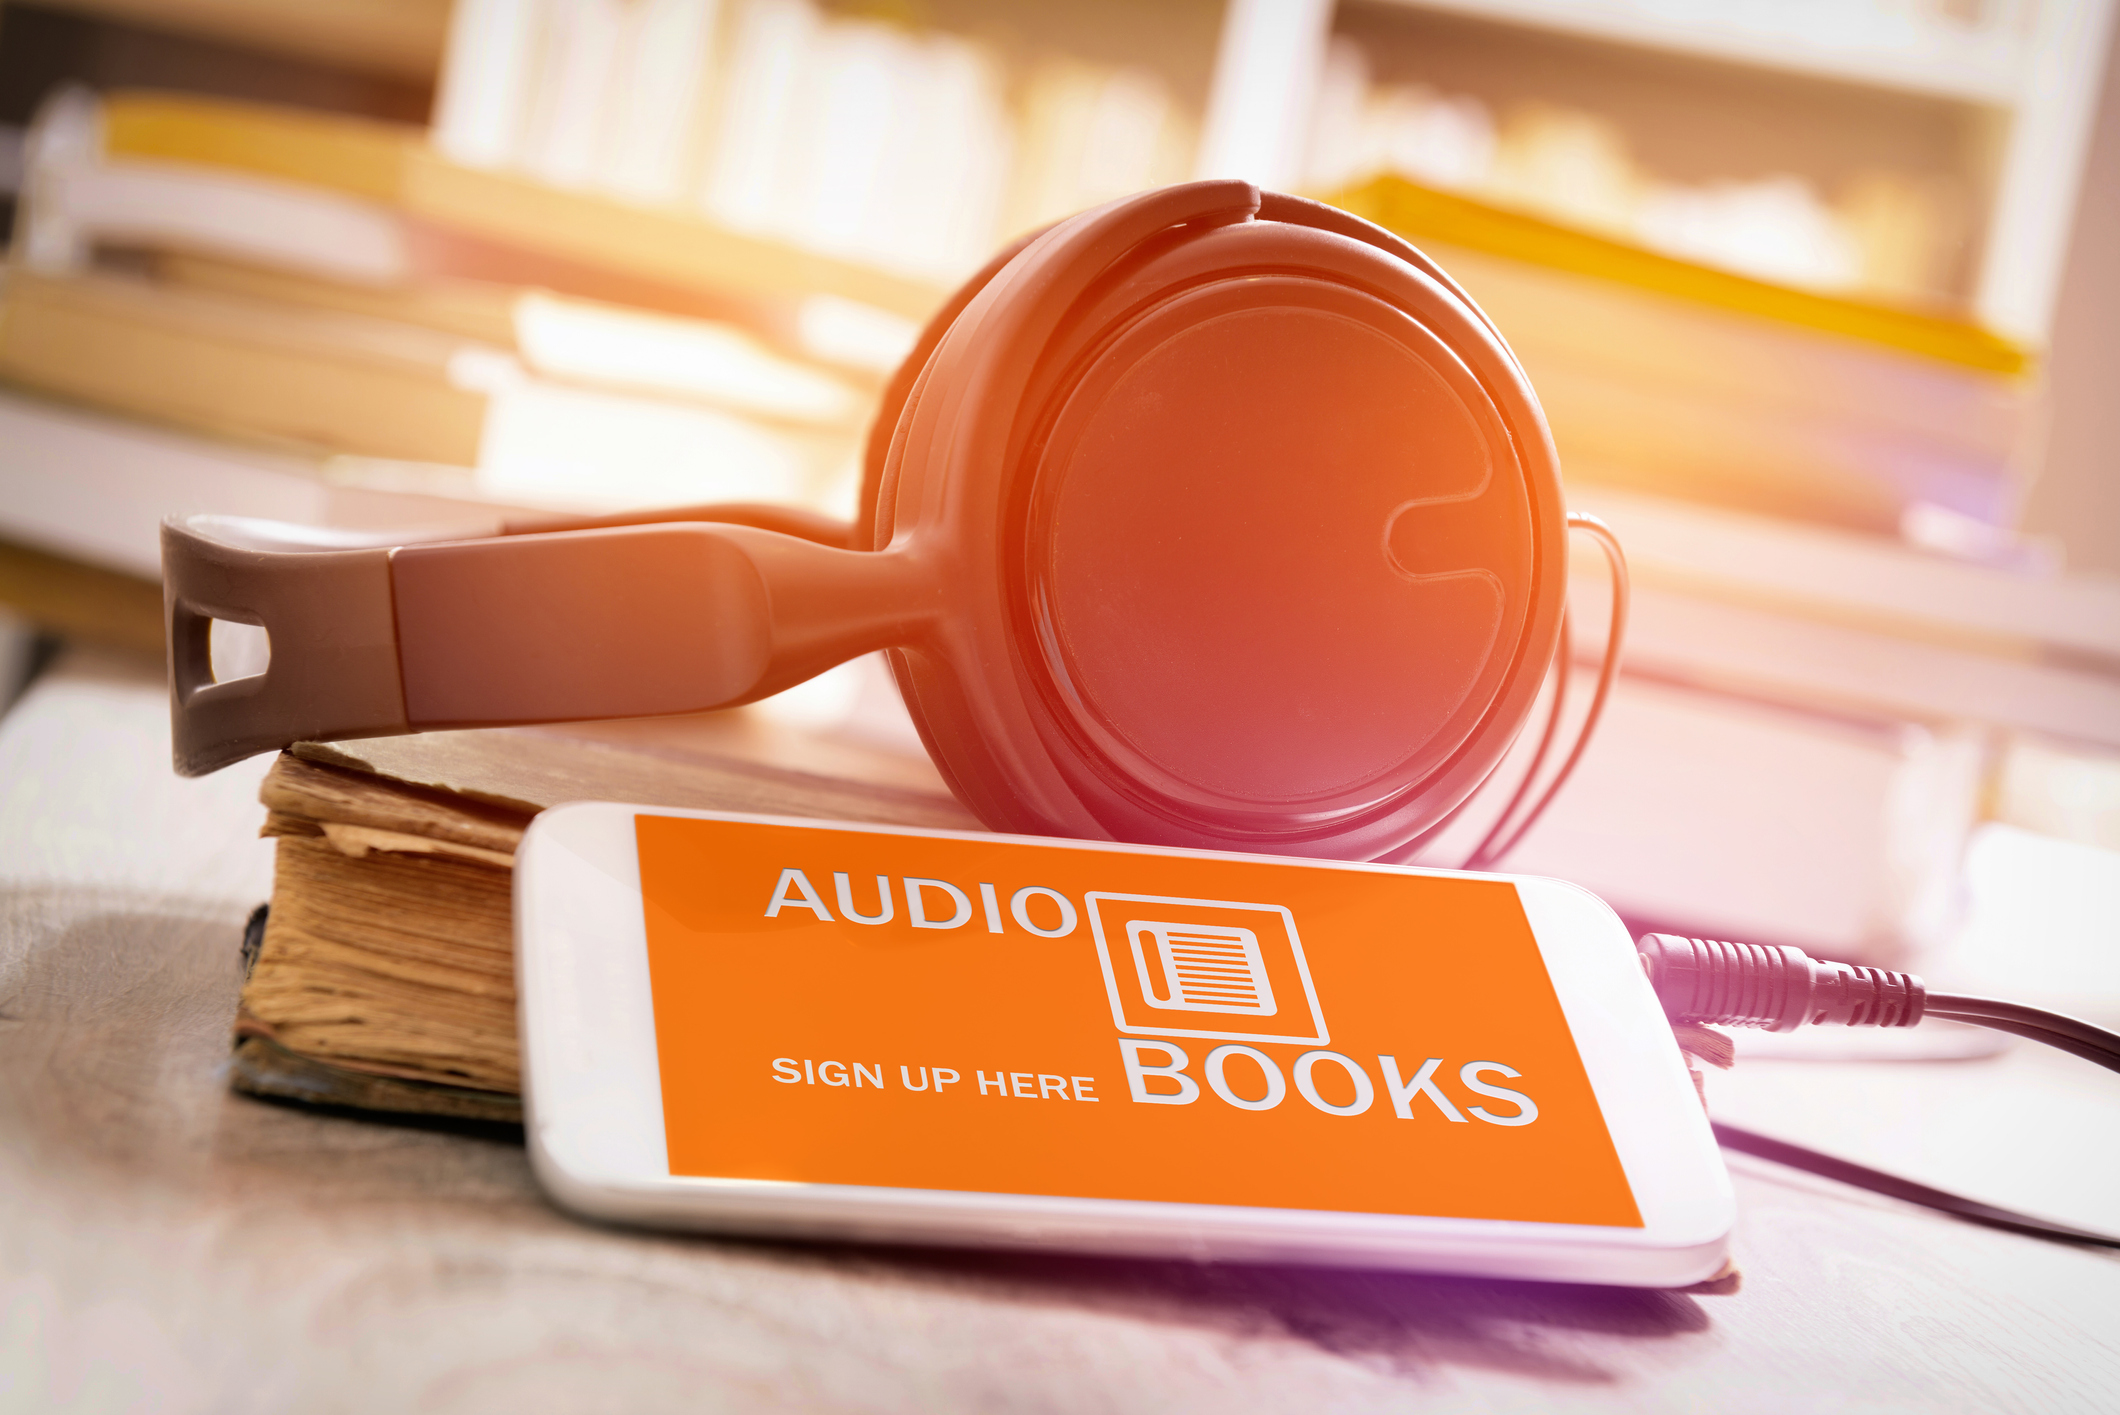 Top 10: Action, suspense lead list for audiobook fans in 2020